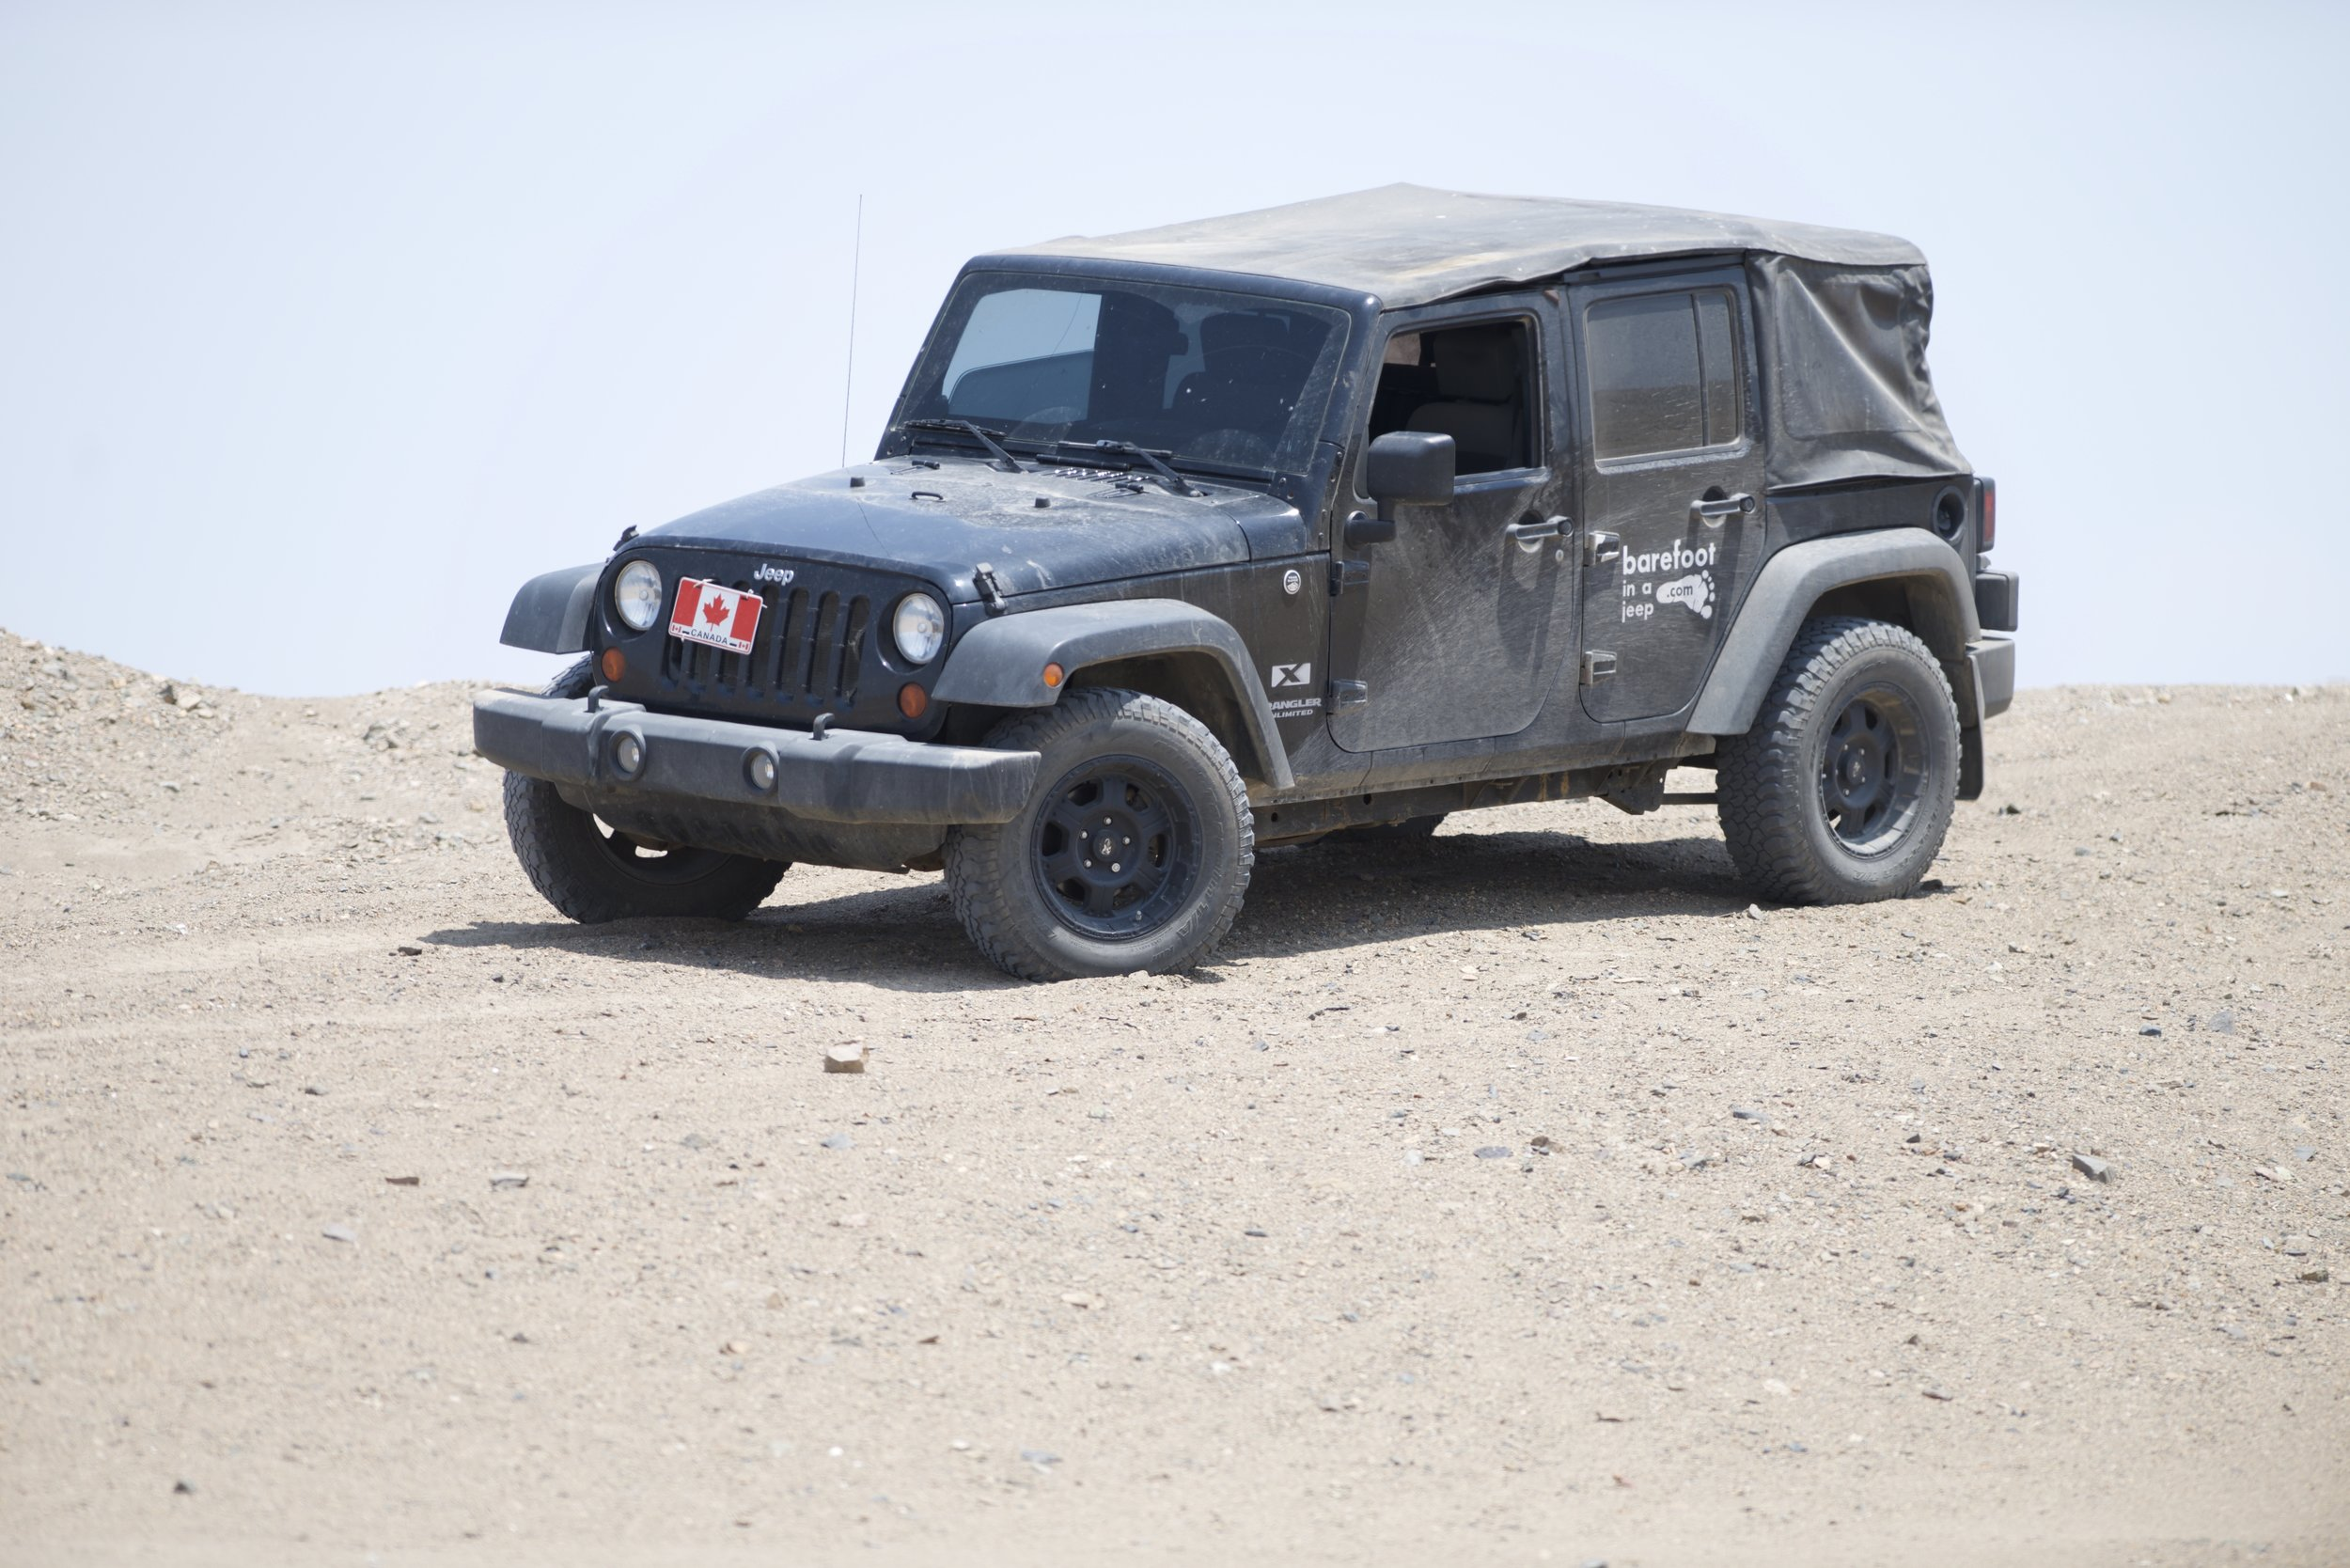 The Jeep is Peru. Peru is a great country to travel to. Sand dunes and the Andes cover the country. One can start is day by the beach and finish it in the snow at 3000 metres high.